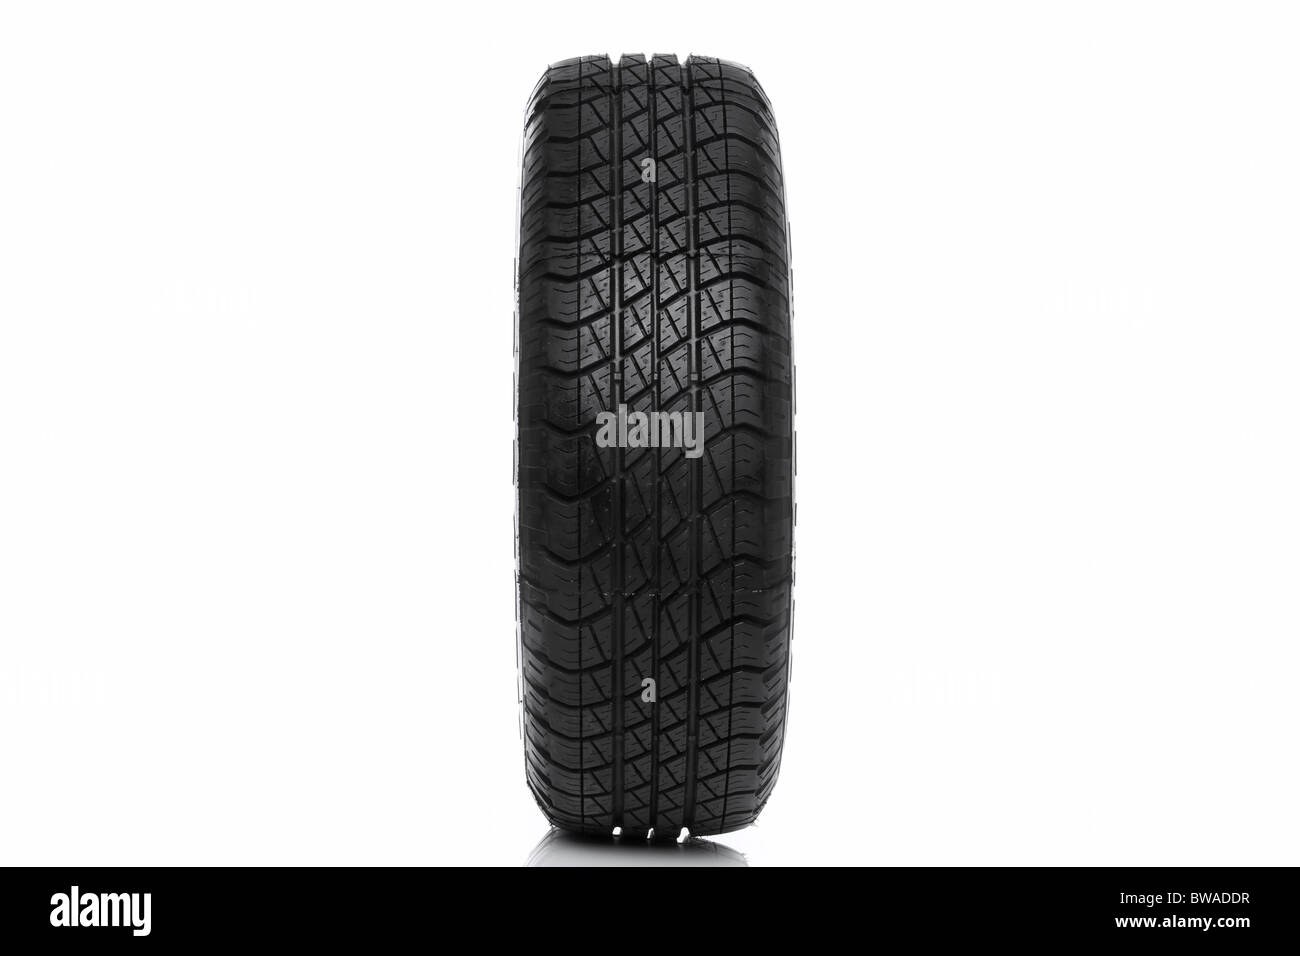 Photo of a car tyre (tire) isolated on a white background - Stock Image